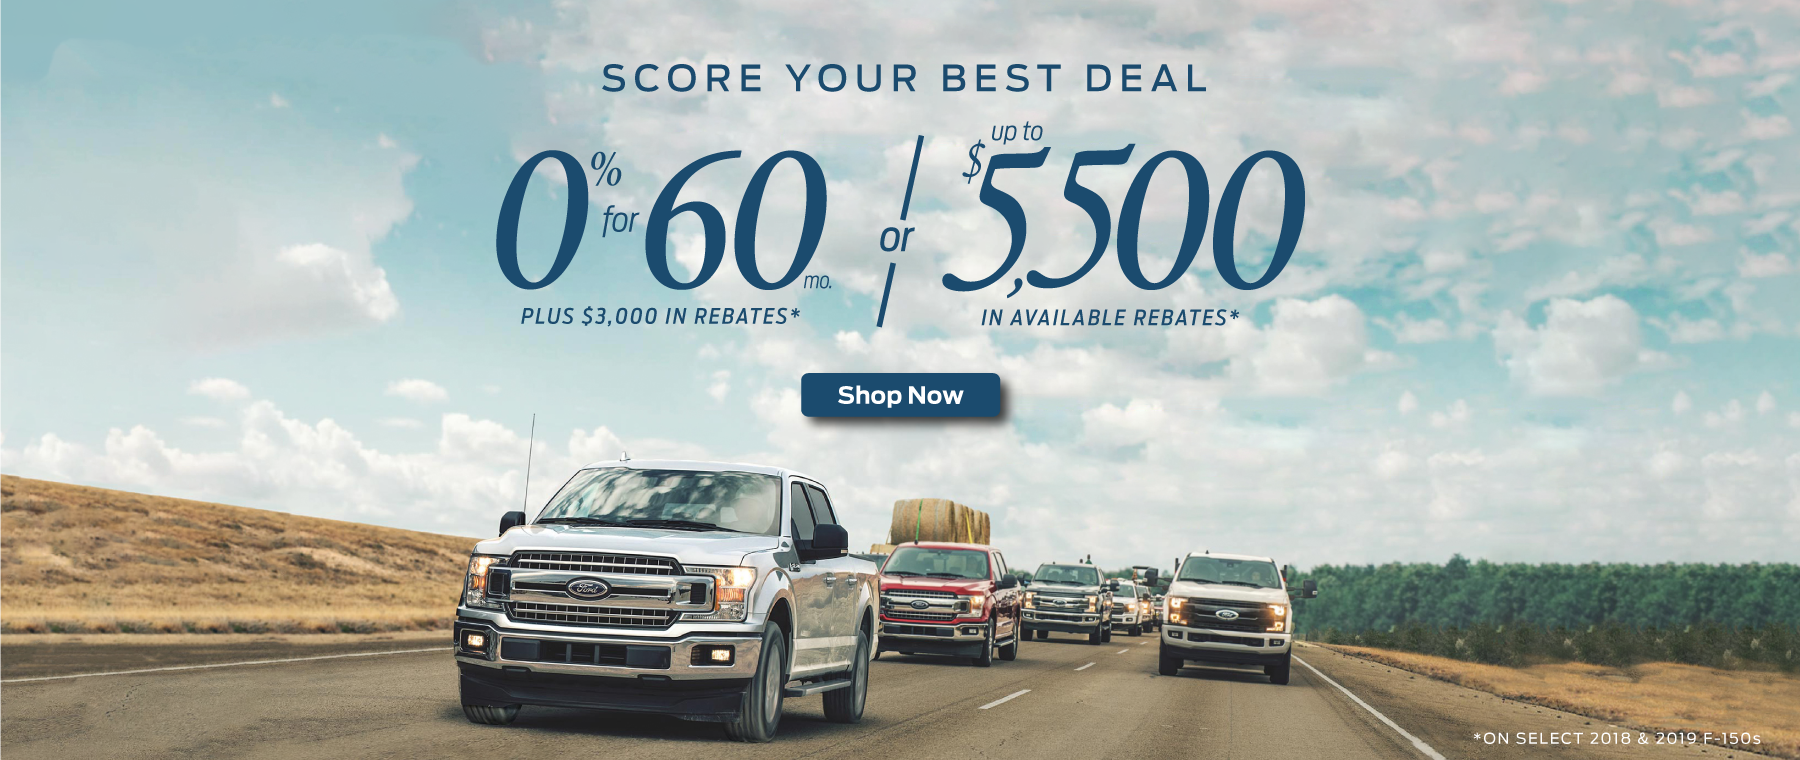 San Diego Ford Dealers >> Ford Dealership In Carlsbad Ca Serving San Diego Ken